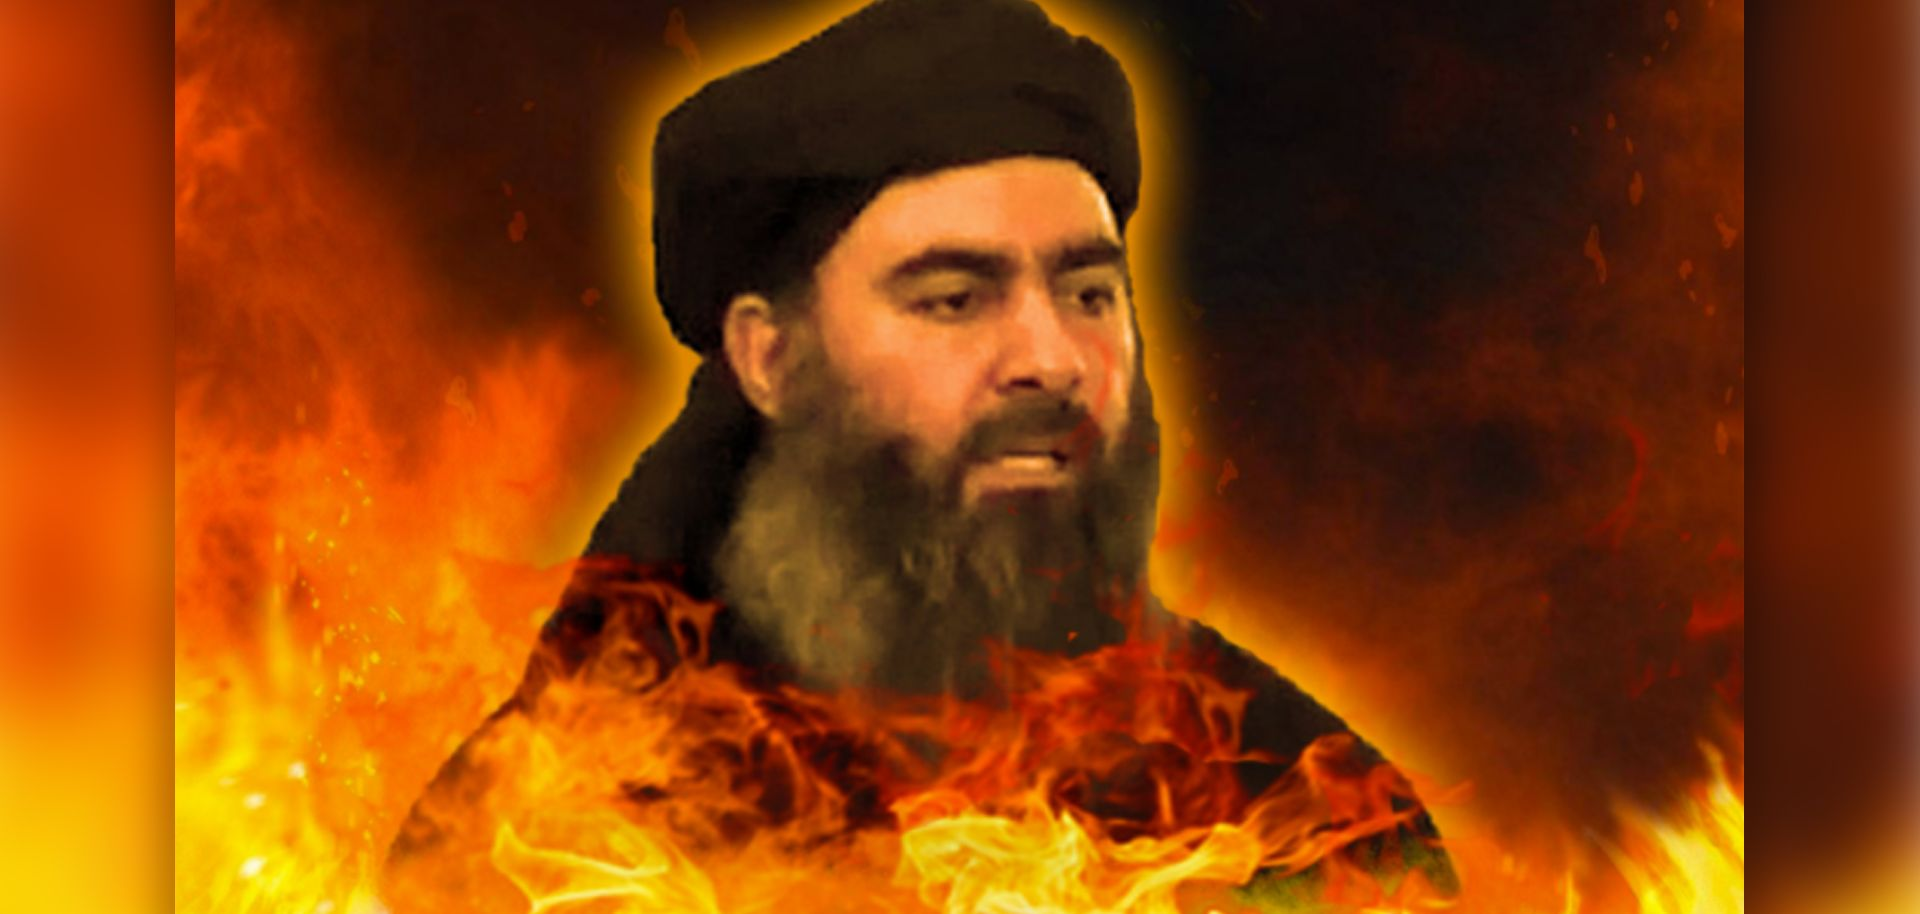 An image from an al Qaeda-inspired magazine shows Islamic State leader Abu Bakr al-Baghdadi in hell. Three years after the Islamic State defected from al Qaeda in an acrimonious and highly public split, many are still concerned that the two could someday reunite.